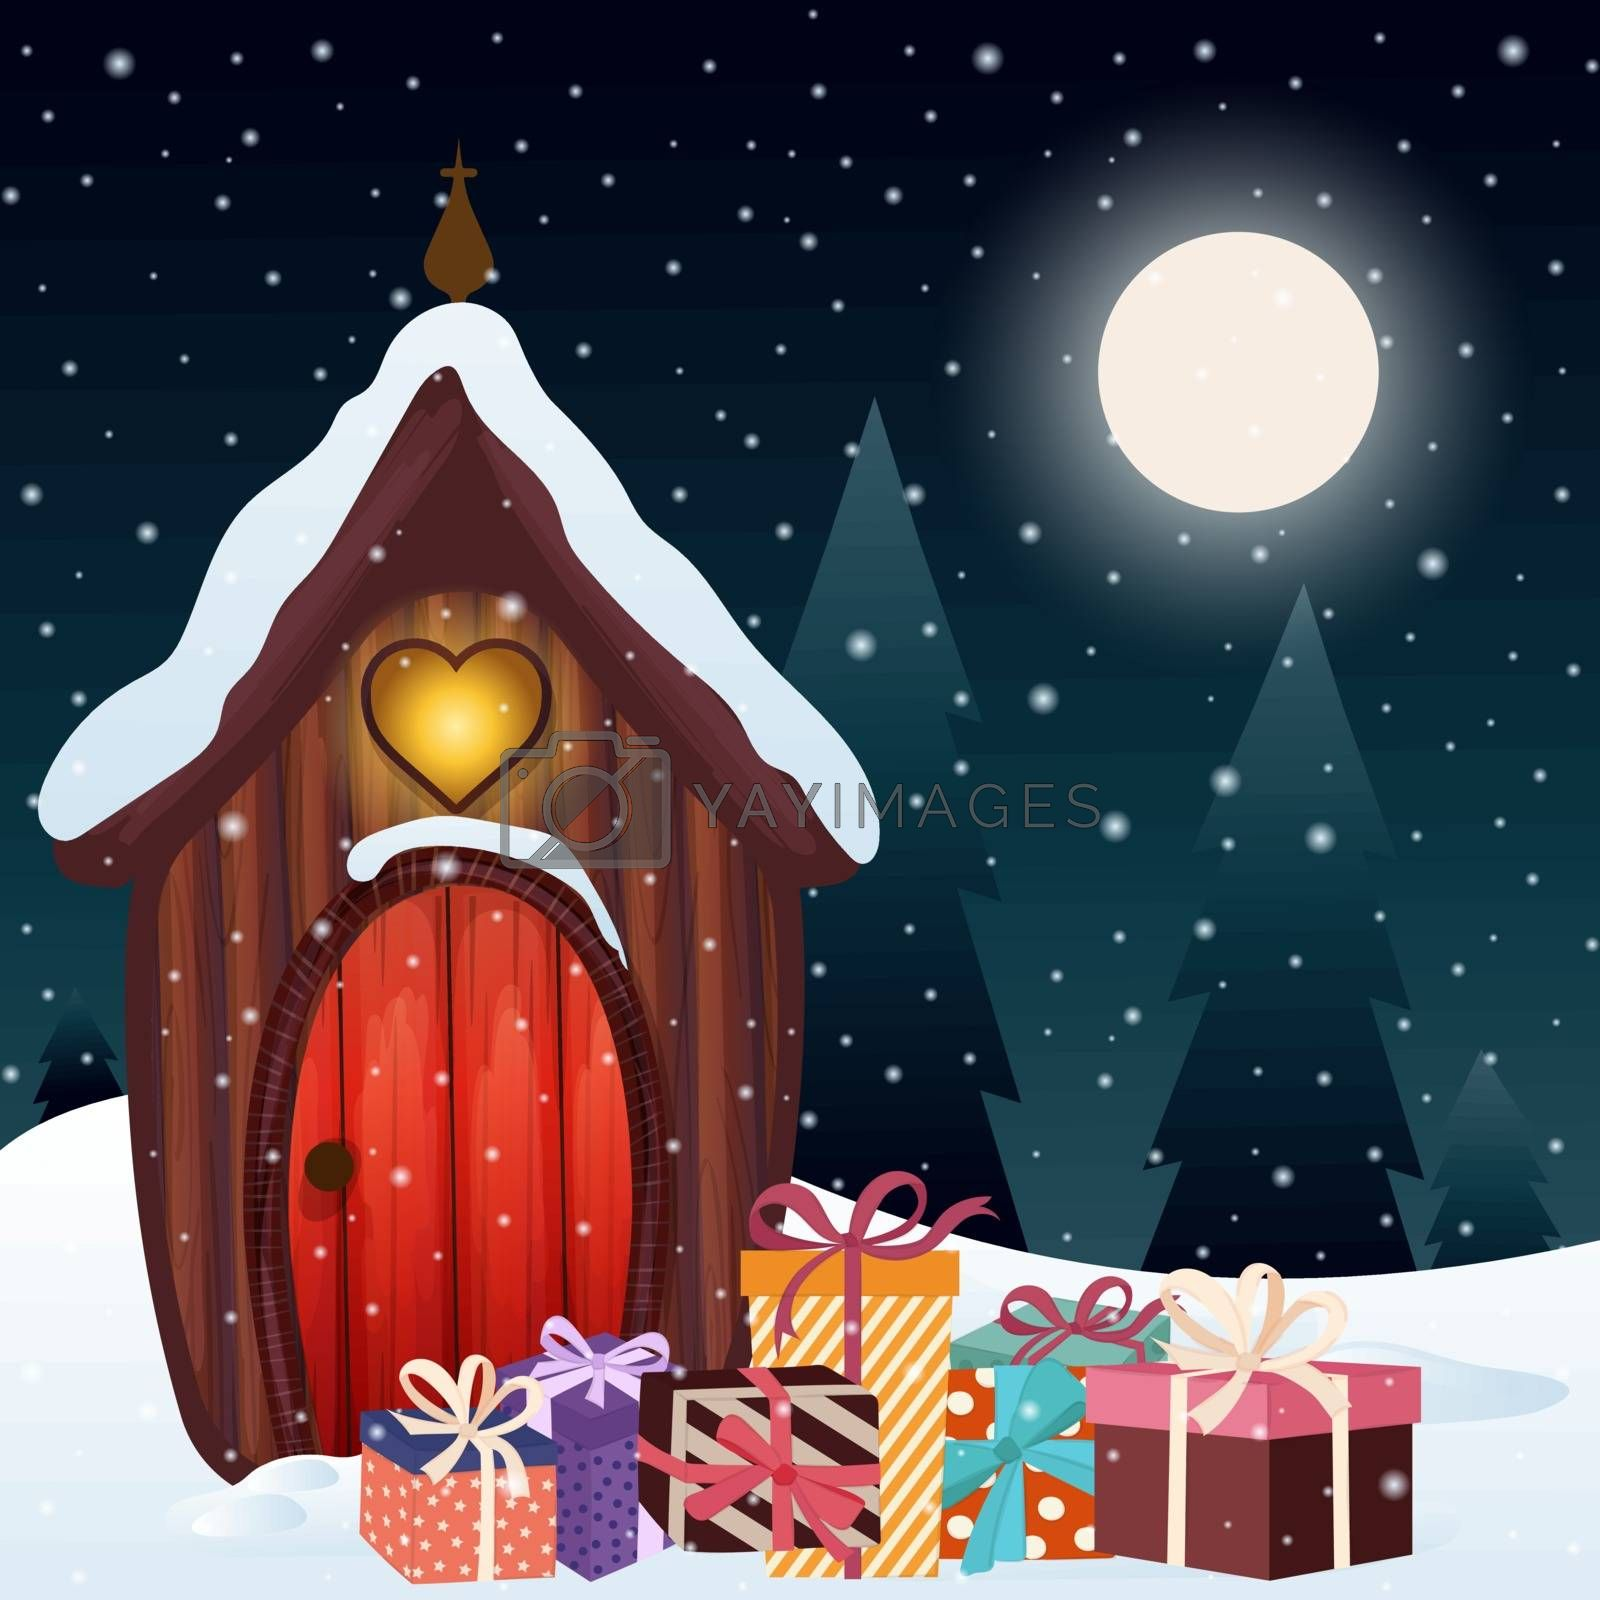 Magical Christmas scene with gnome house and presents